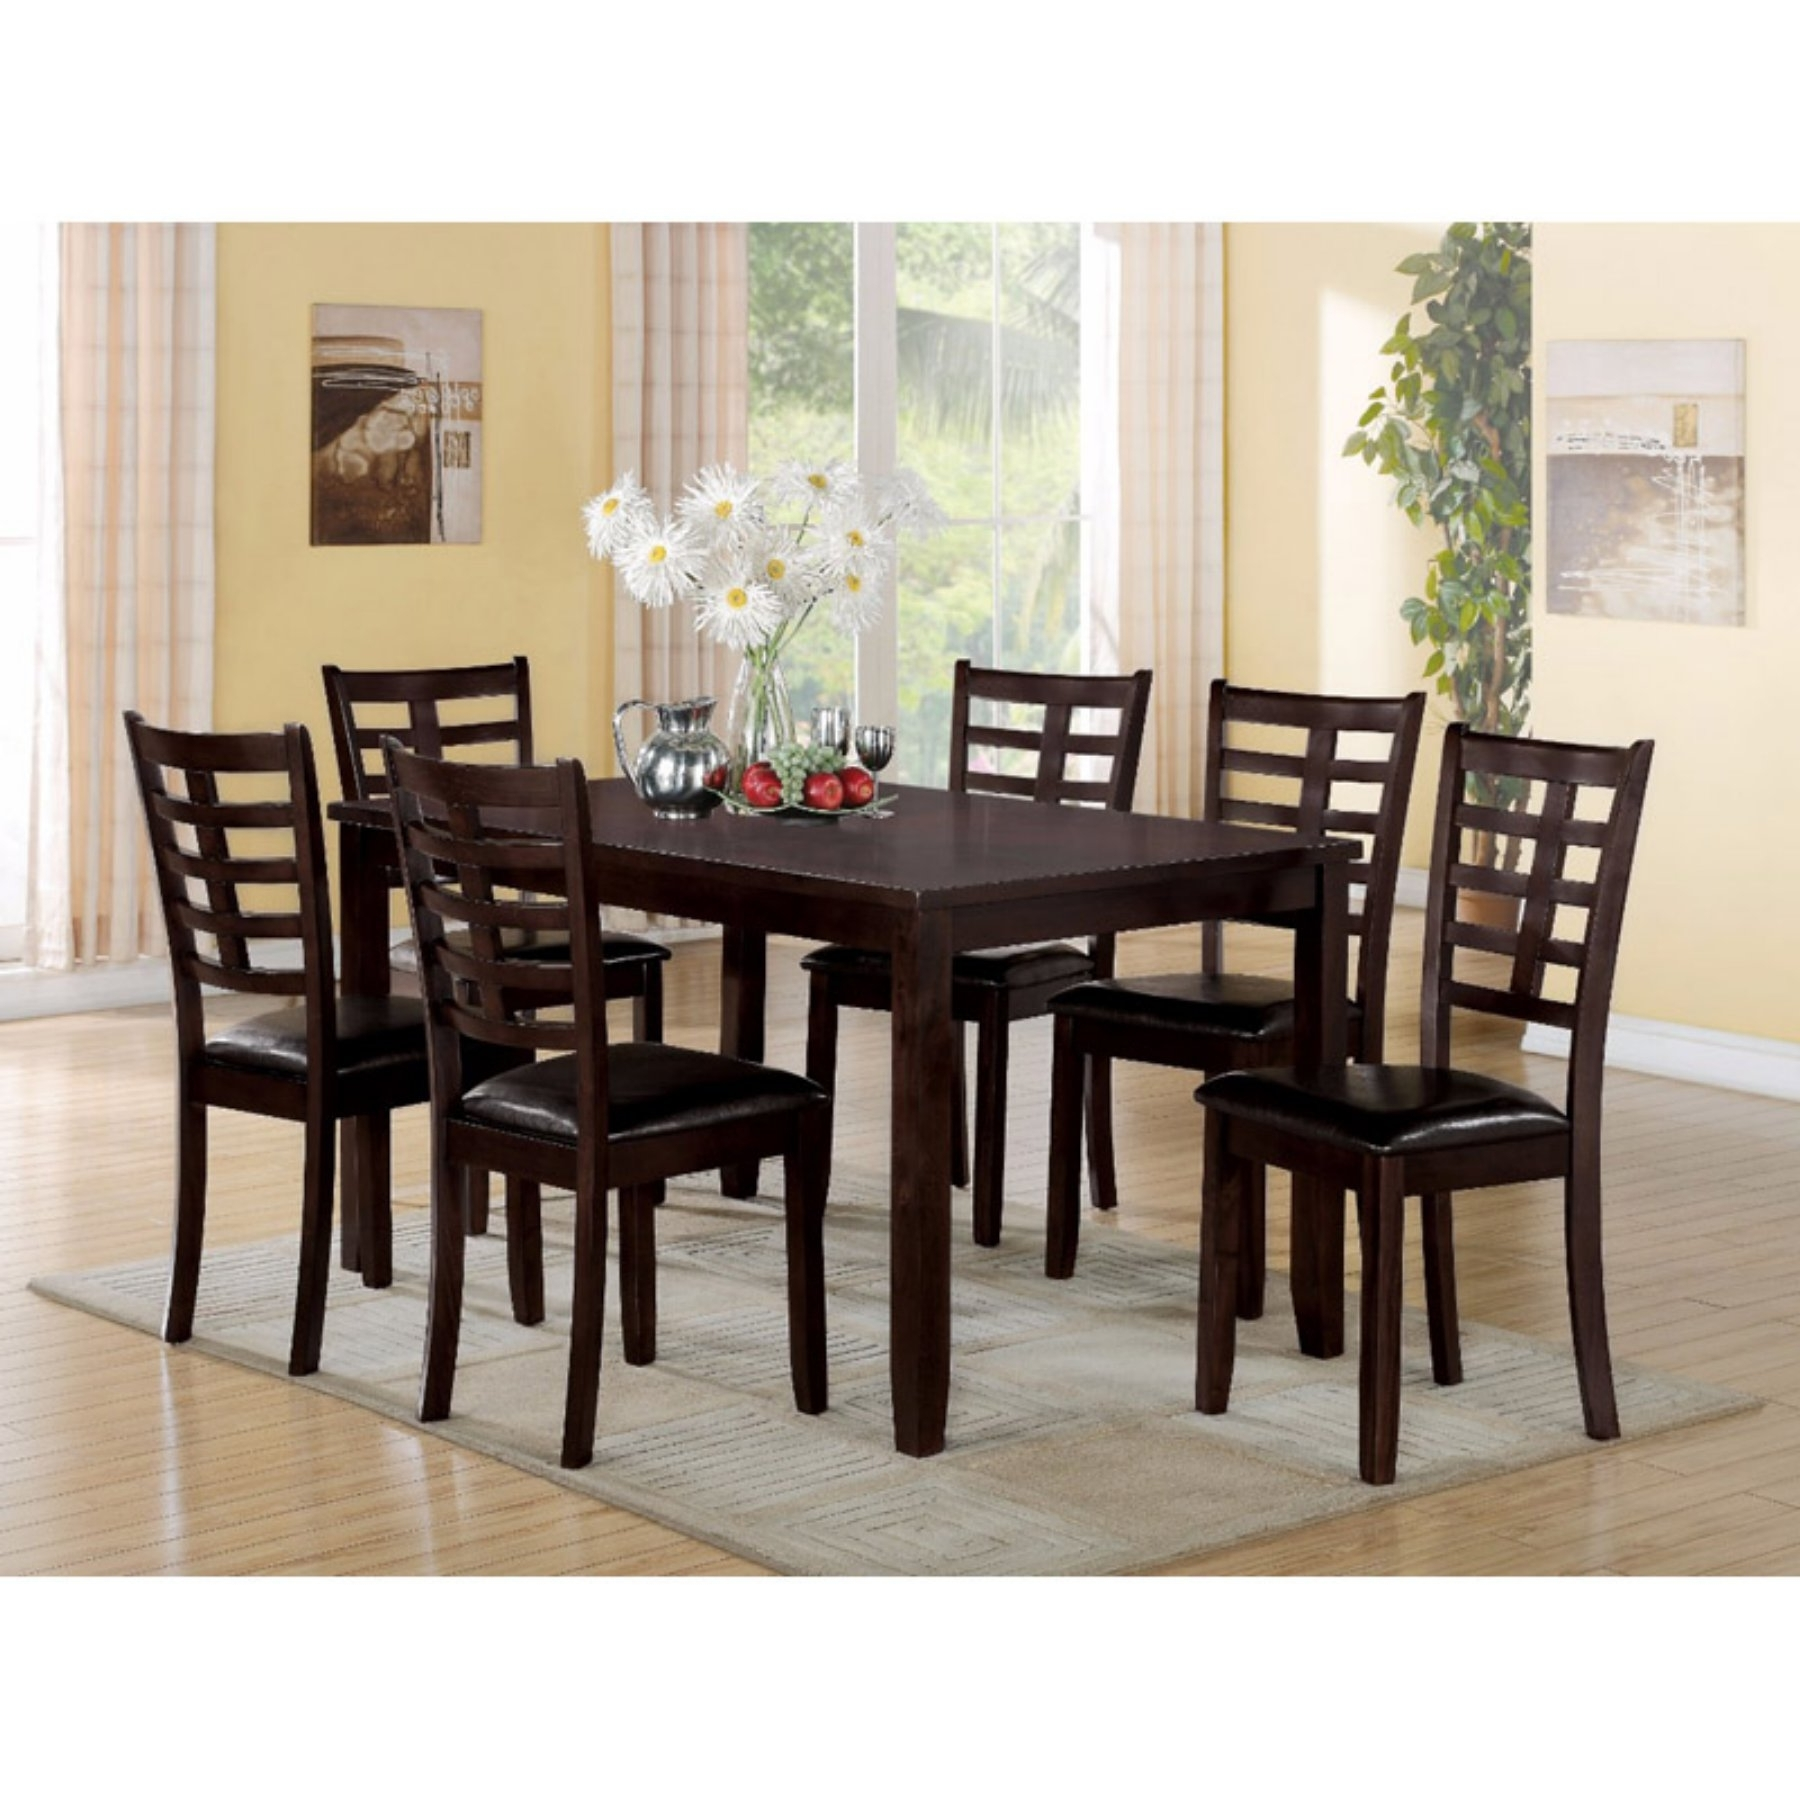 Benzara Wooden 7 Piece Rectangular Dining Table Set In 2018 Inside Fashionable Crawford 7 Piece Rectangle Dining Sets (View 10 of 25)